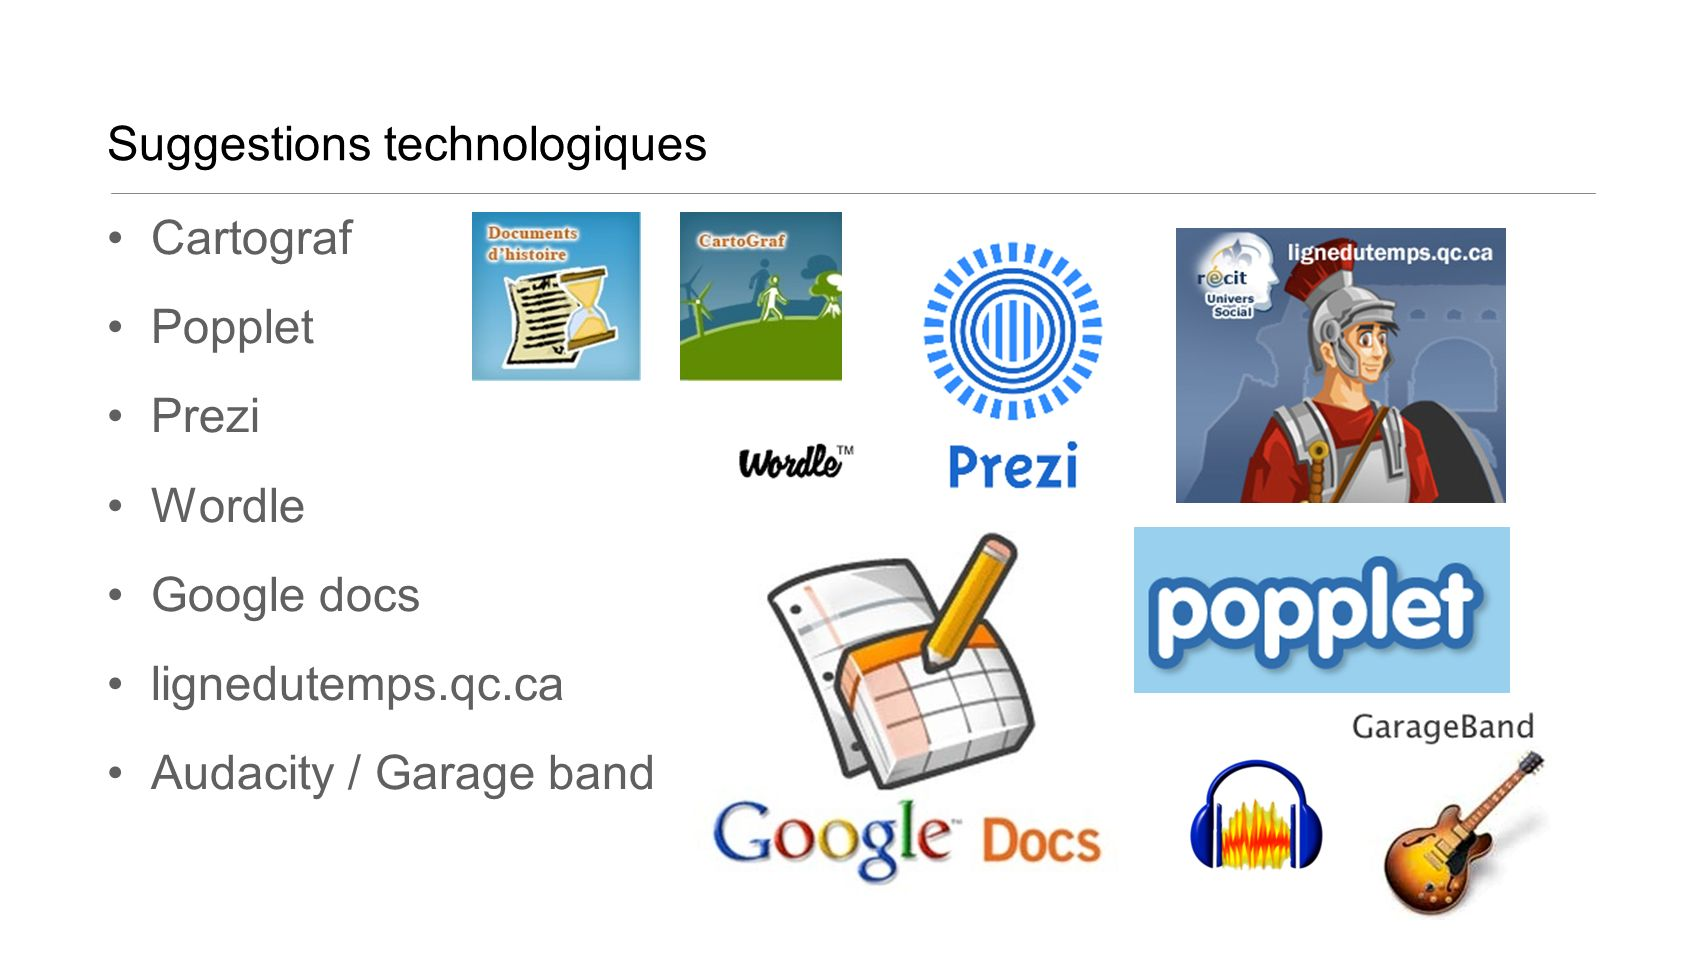 Suggestions technologiques